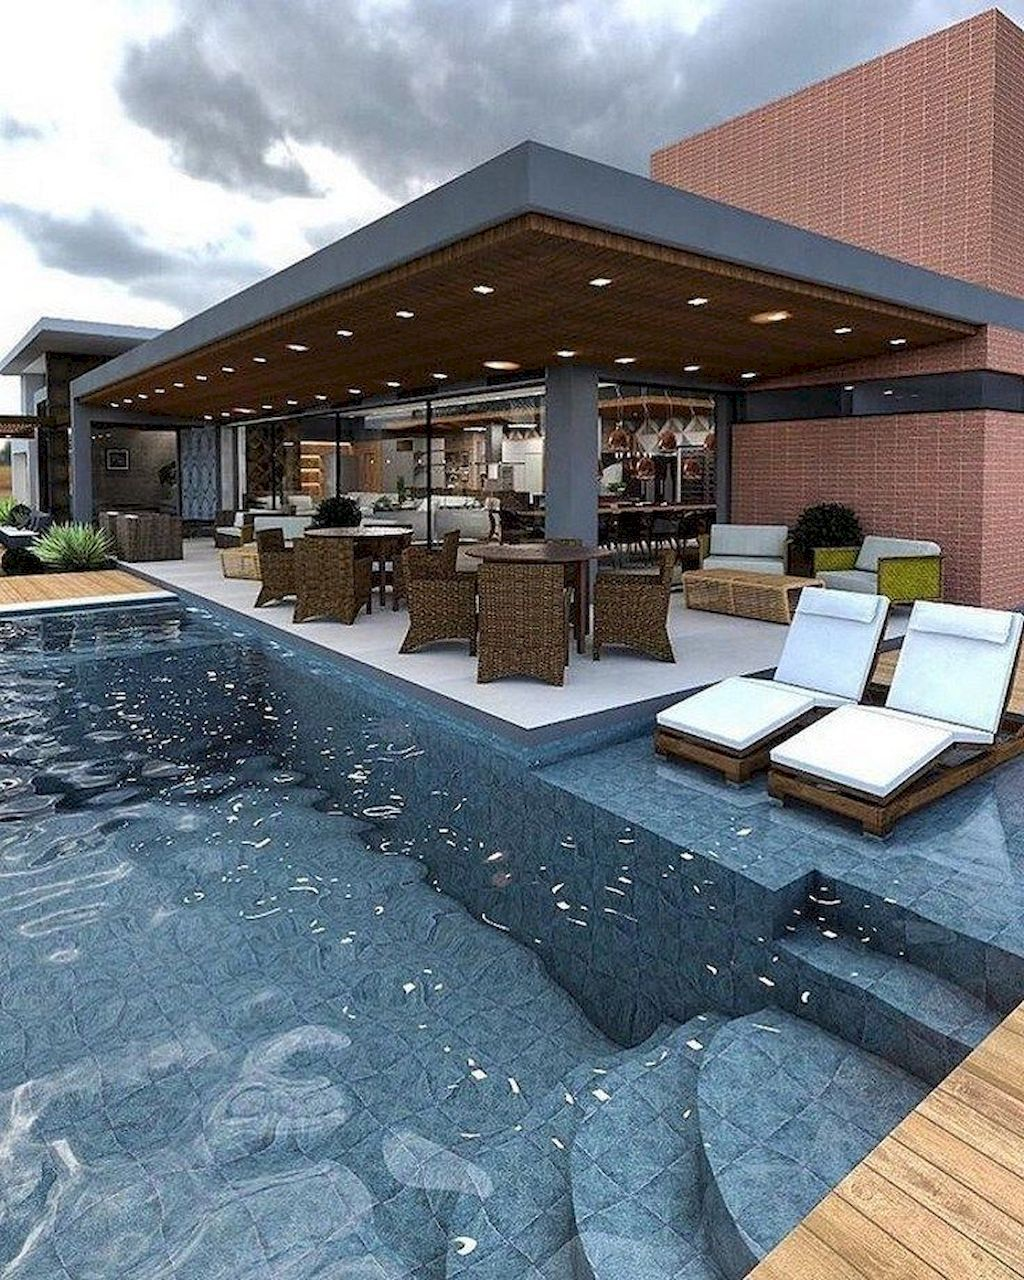 Adorable Swimming Pool Designs For Most Enjoyable And Enjoyment Backyard Pool Designs Swimming Pools Backyard Backyard